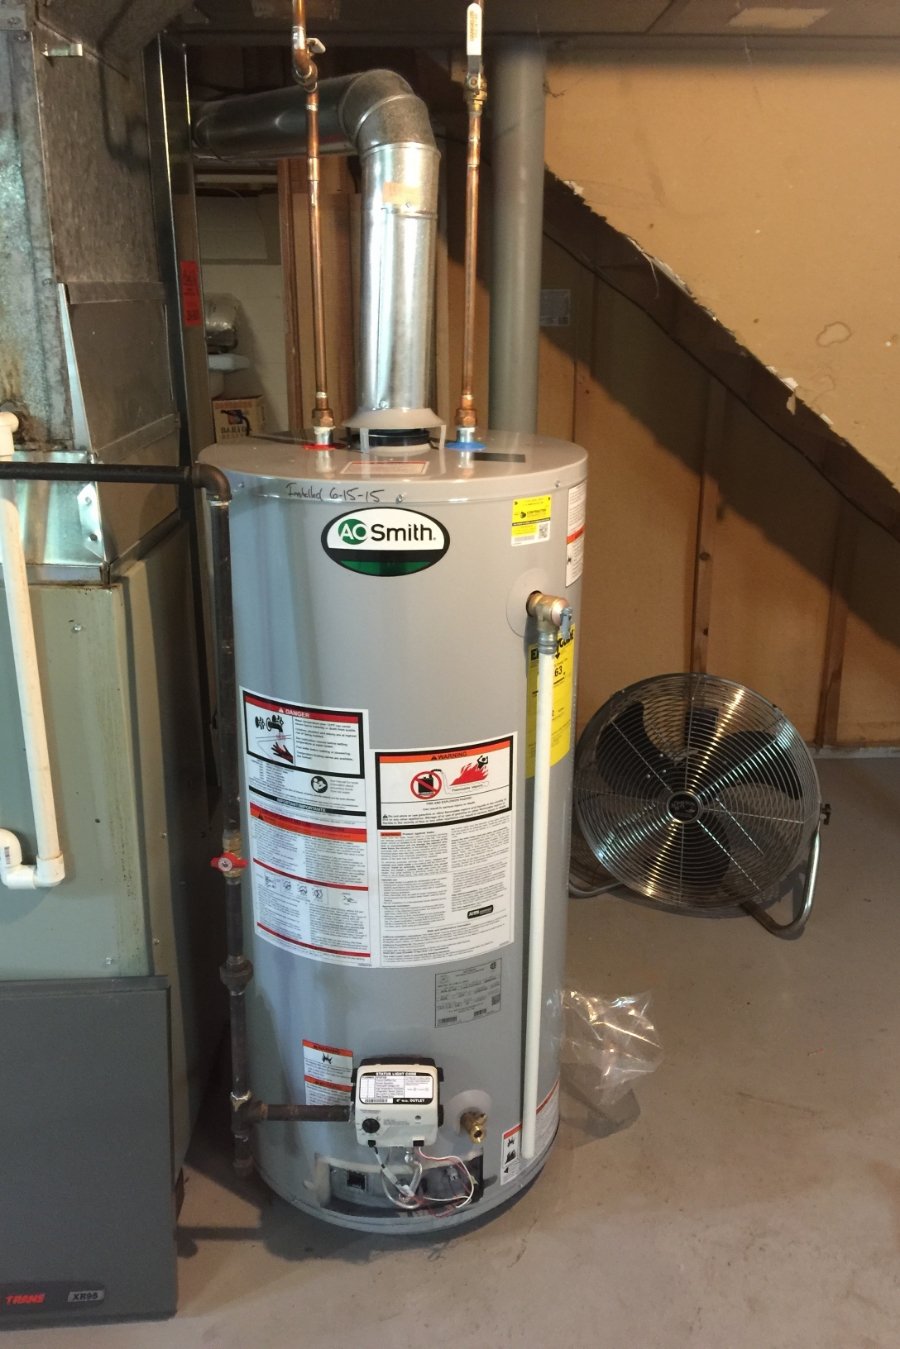 New AO Smith Water Heater.